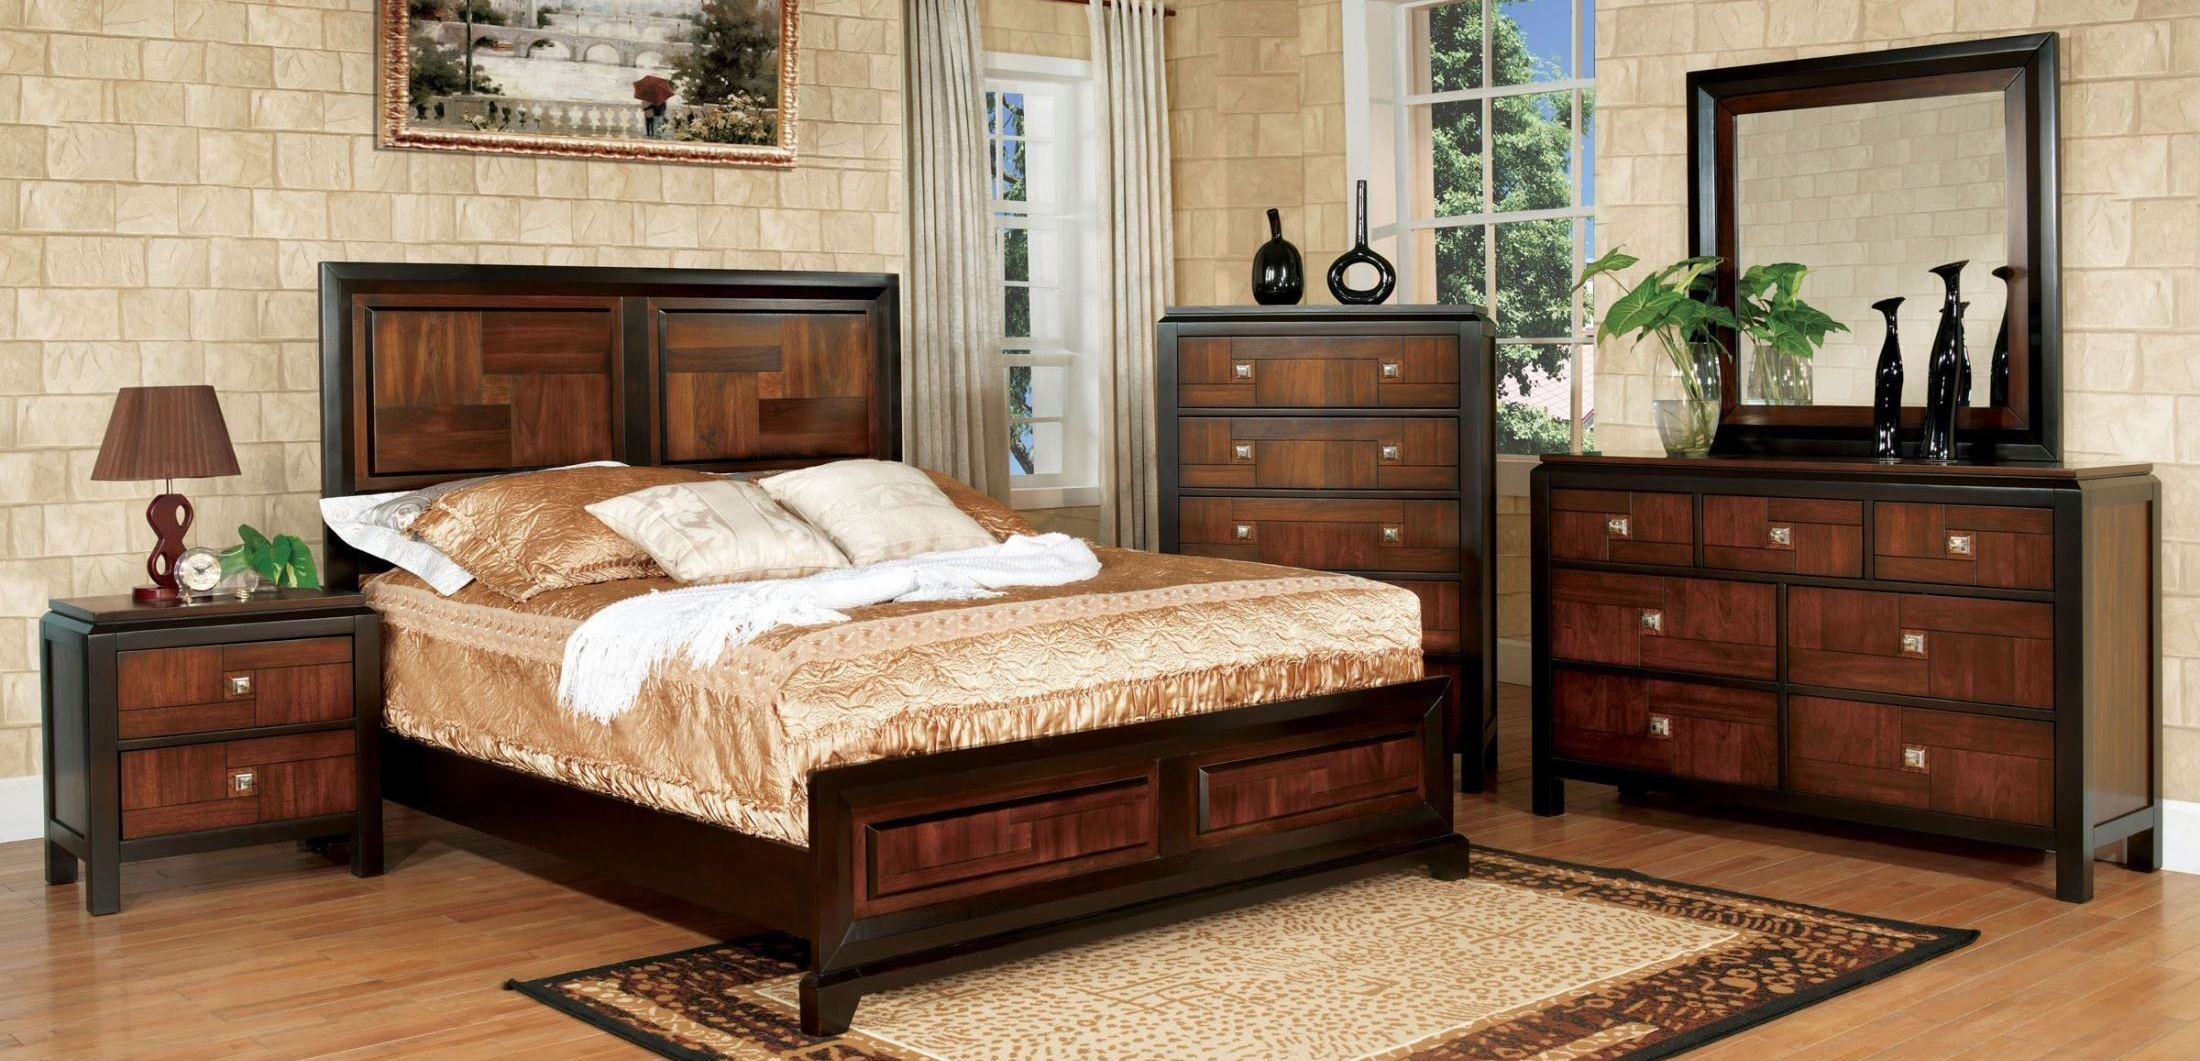 Patra acacia and walnut youth panel bedroom set from for Walnut bedroom furniture